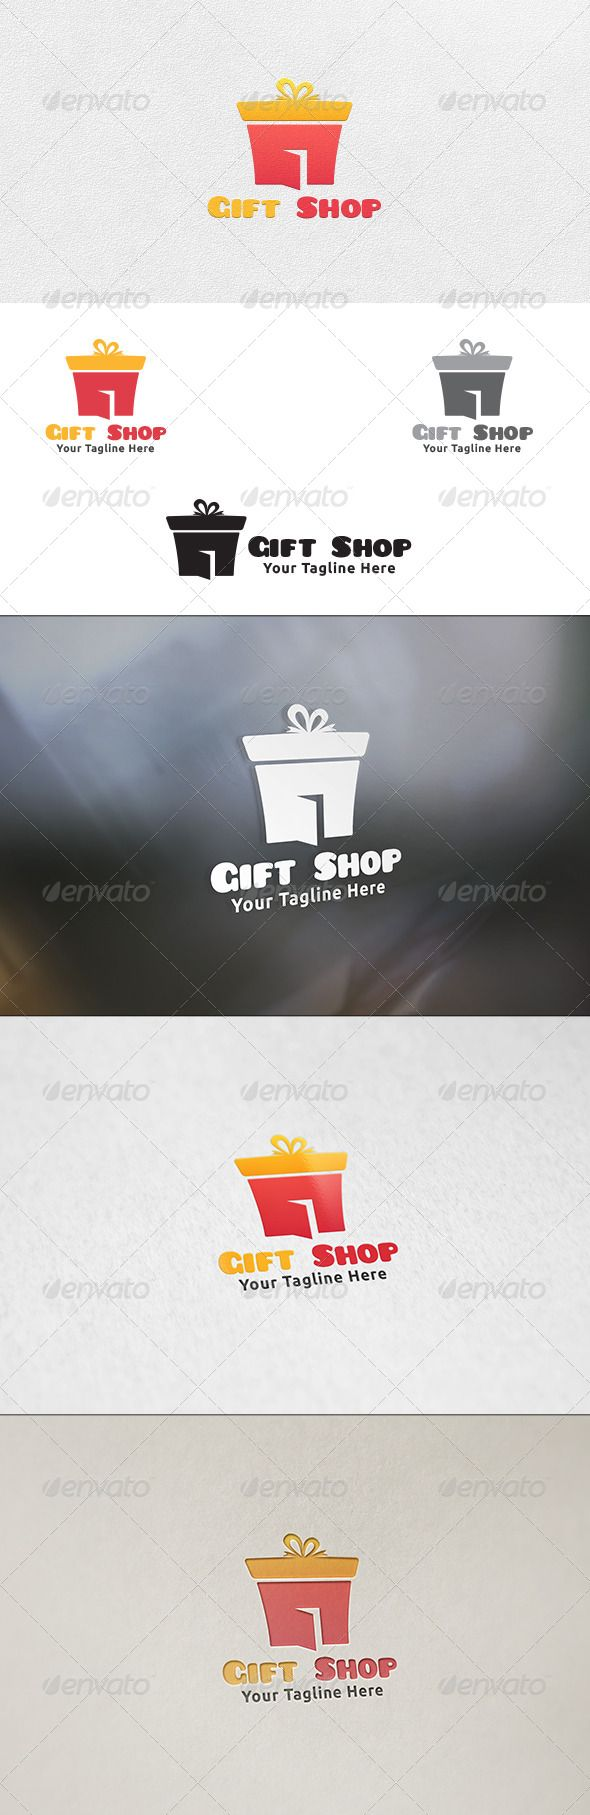 Gift Shop  Logo Design Template Vector #logotype Download it here:  http://graphicriver.net/item/gift-shop-logo-template/6554473?s_rank=1437?ref=nexion